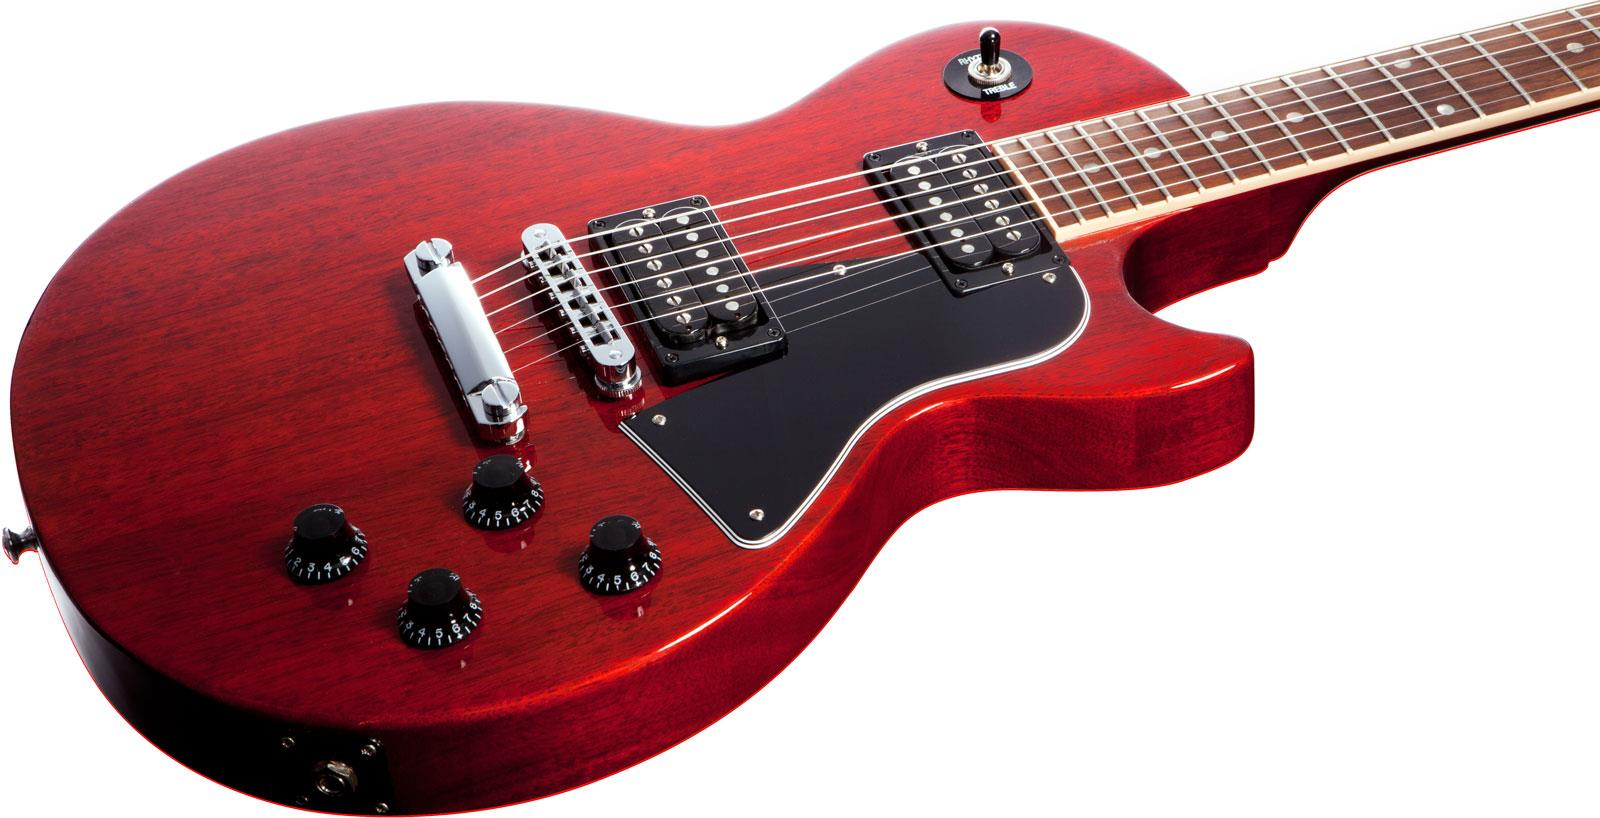 wiring diagram gibson les paul junior 1989 ford f150 starter solenoid special humbucker heritage cherry